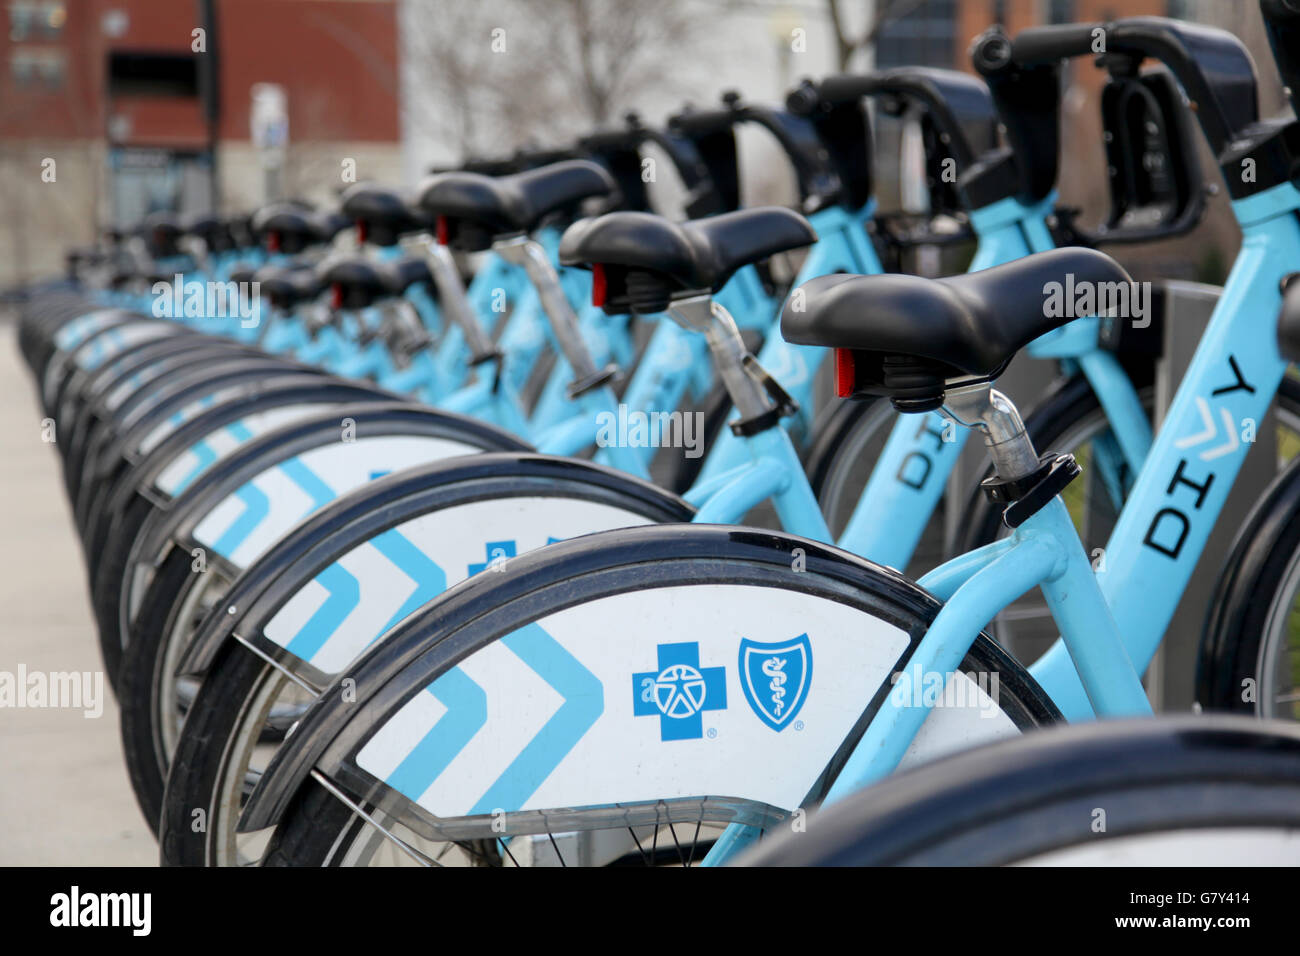 Divvy Bike-Sharing racks completely stocked in Chicago, Illinois. - Stock Image